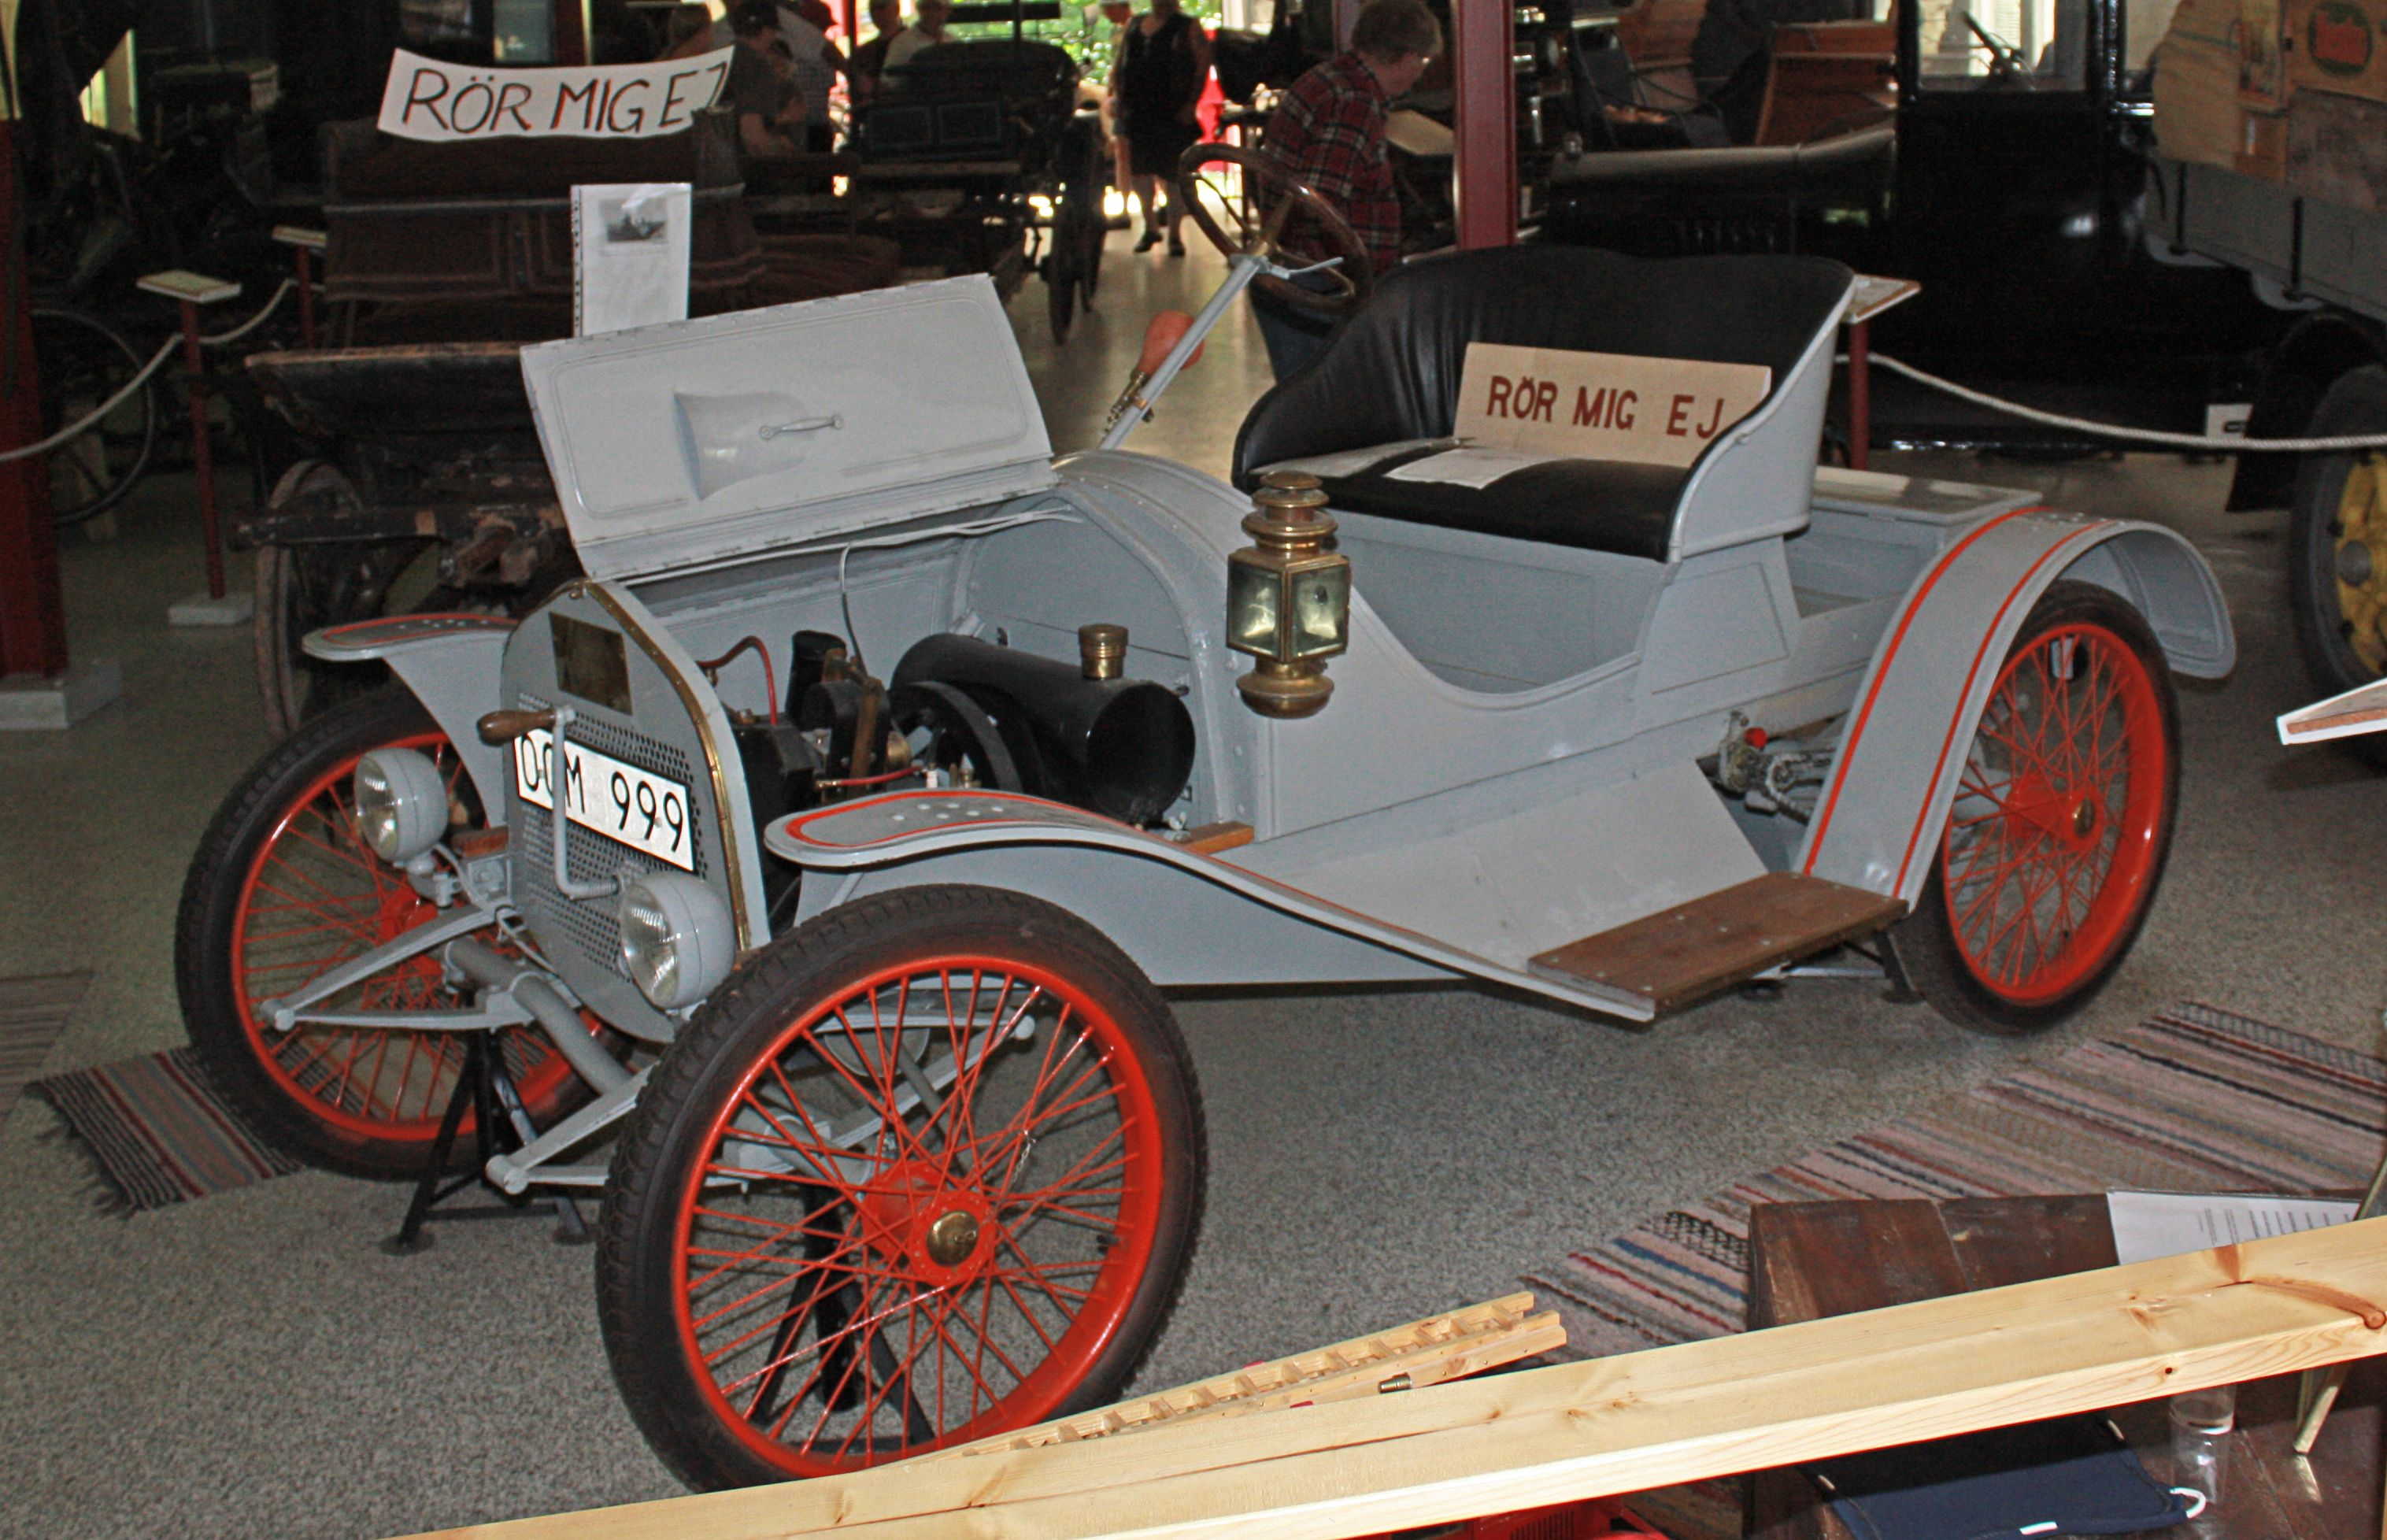 Ellemobil was a car type constructed by the Danish inventor Jacob ...